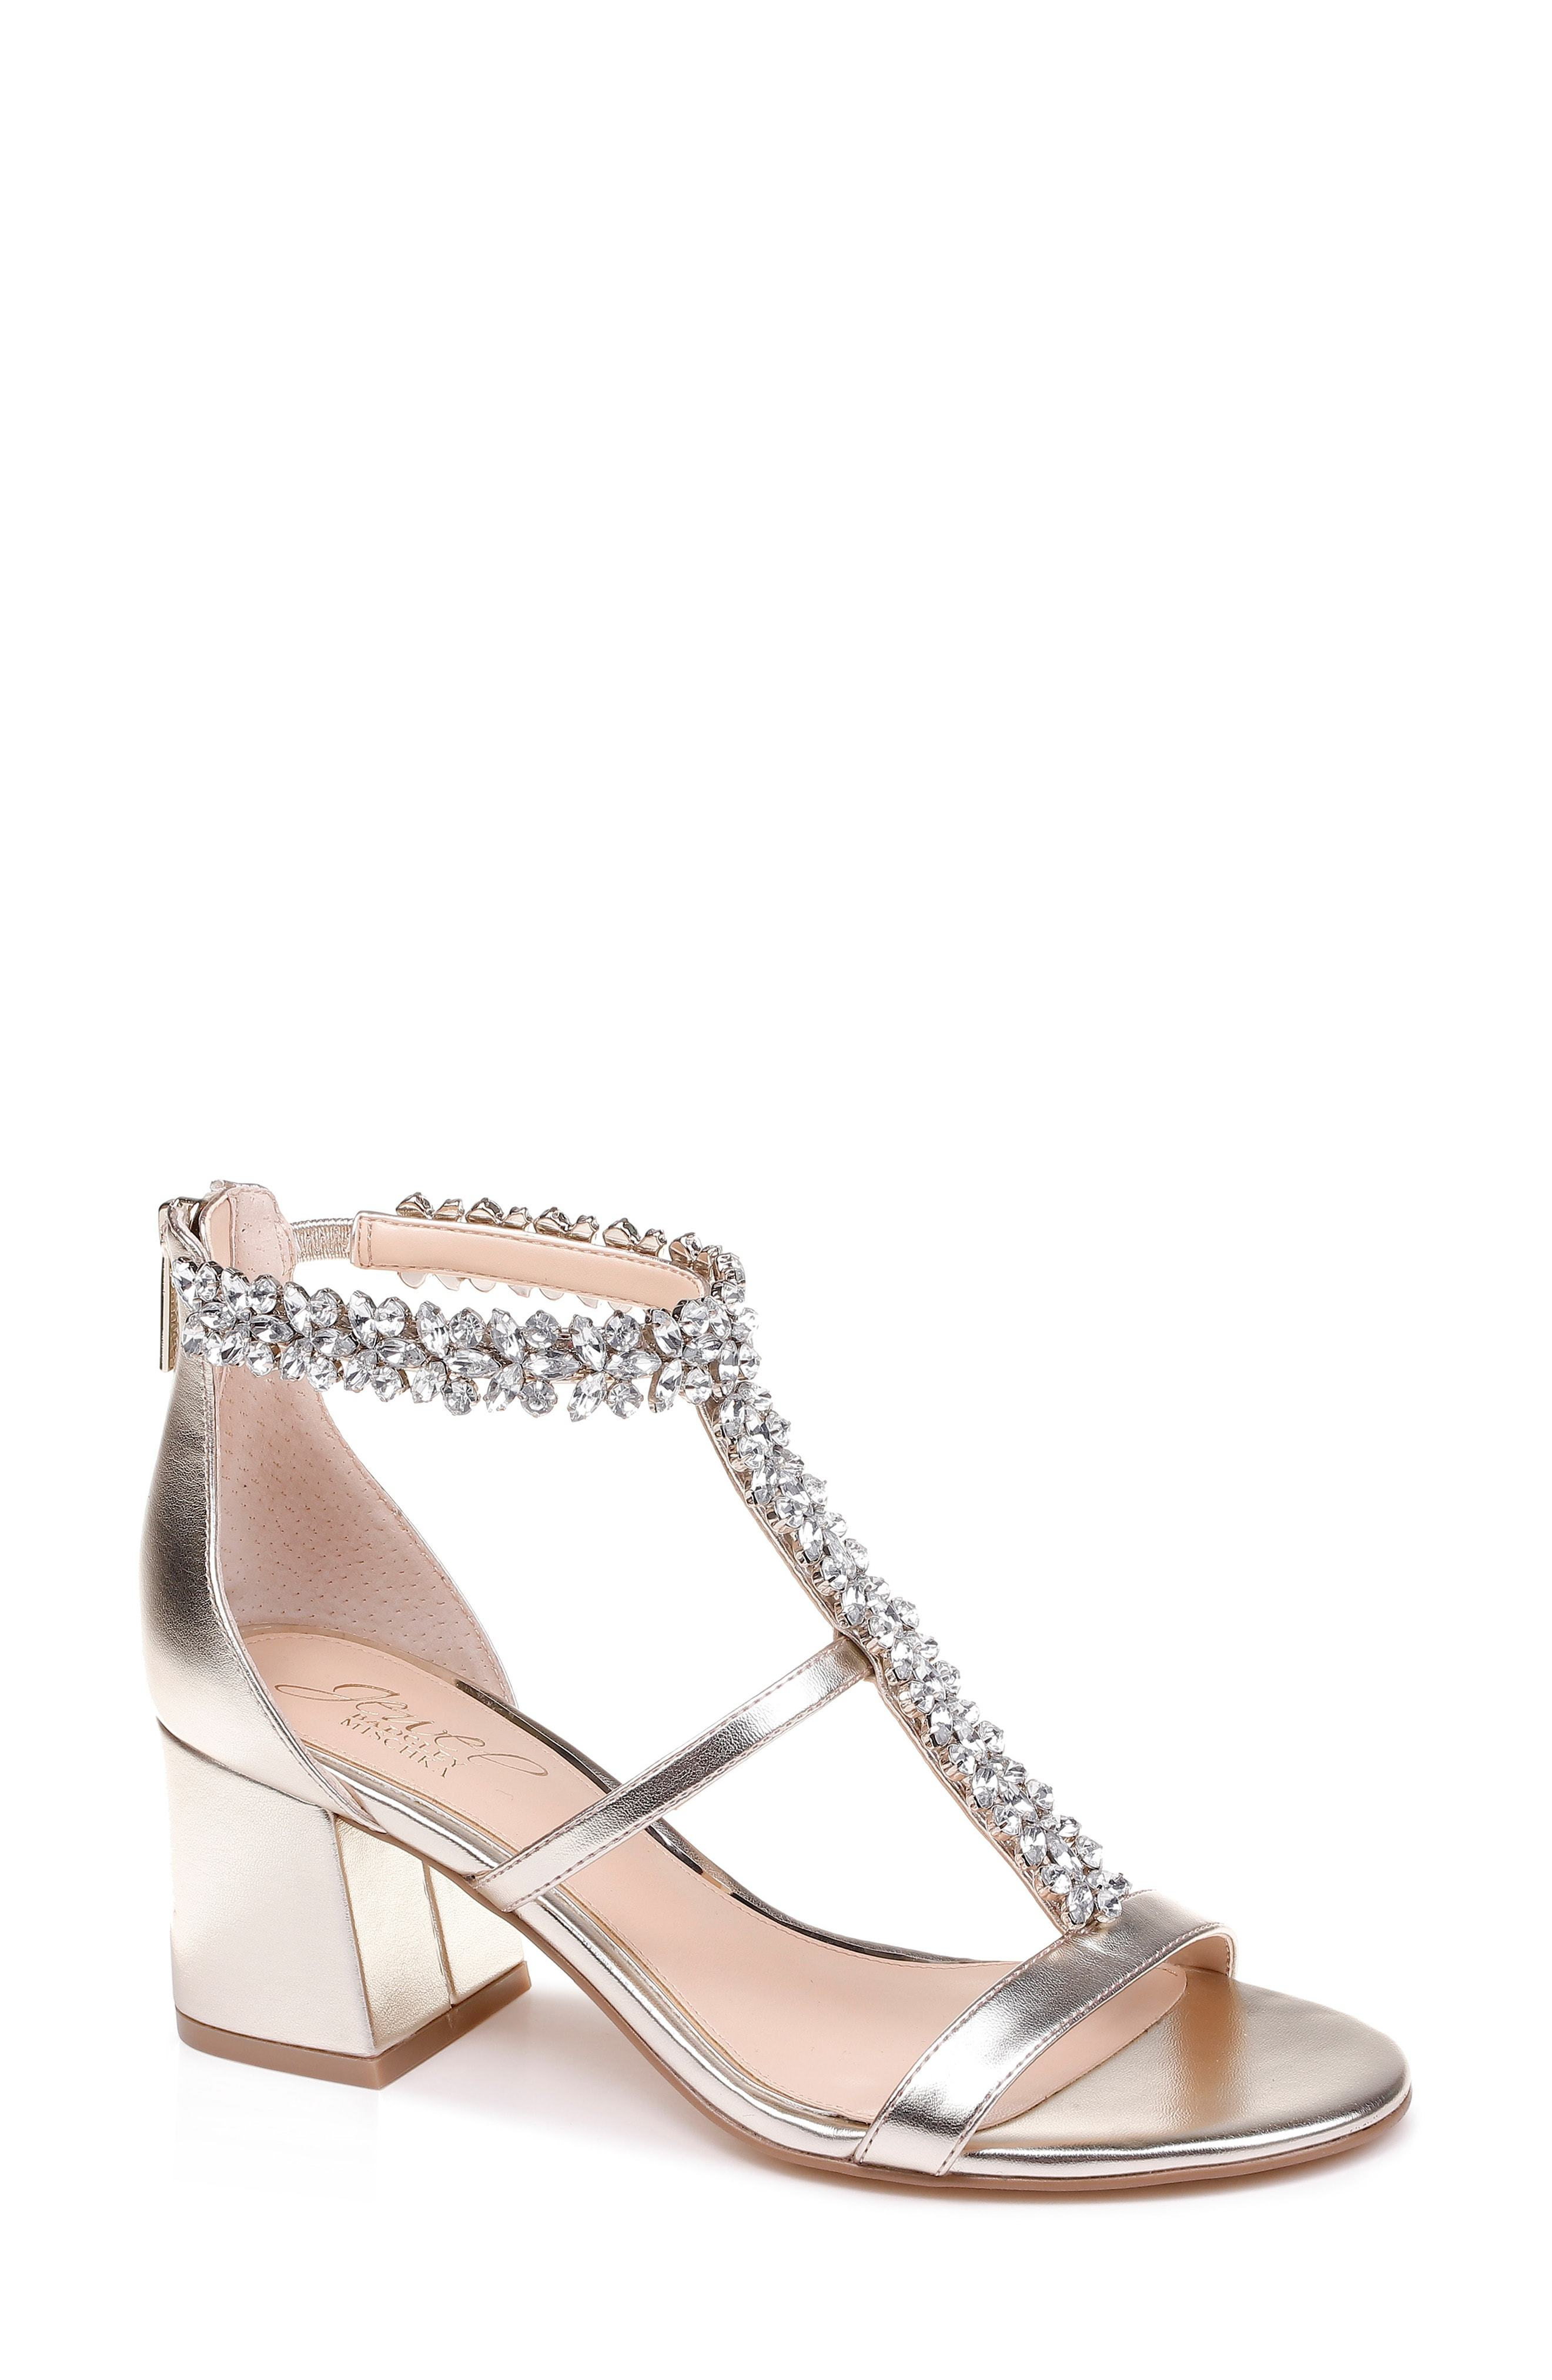 48cbe2d817a Janica Block Heel Sandal. Silver Embellished Leather Heeled Sandals by JEWEL  BADGLEY MISCHKA